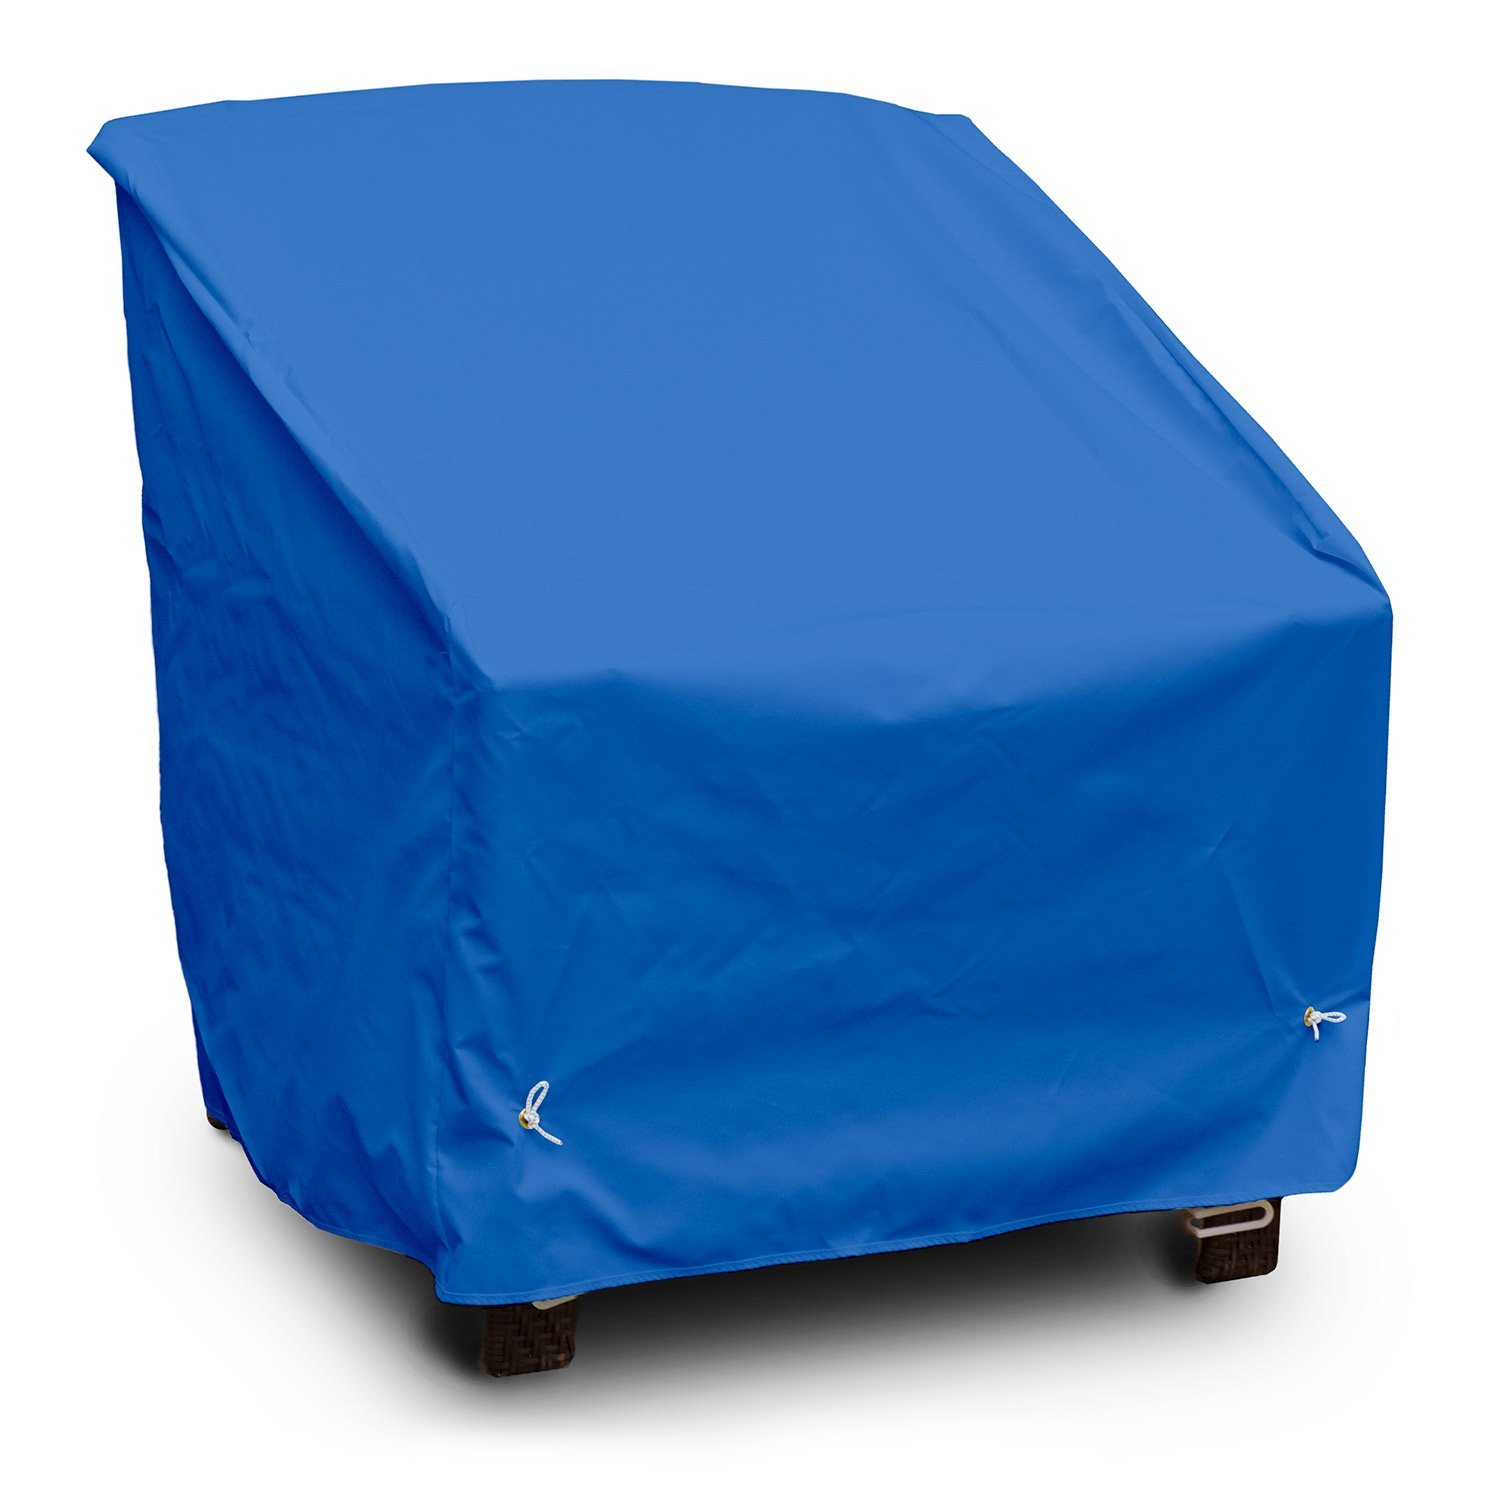 KoverRoos Weathermax 06250 Deep Seating High Back Chair Cover, 34-Inch Width by 35-Inch Diameter by 37-Inch Height, Pacific Blue